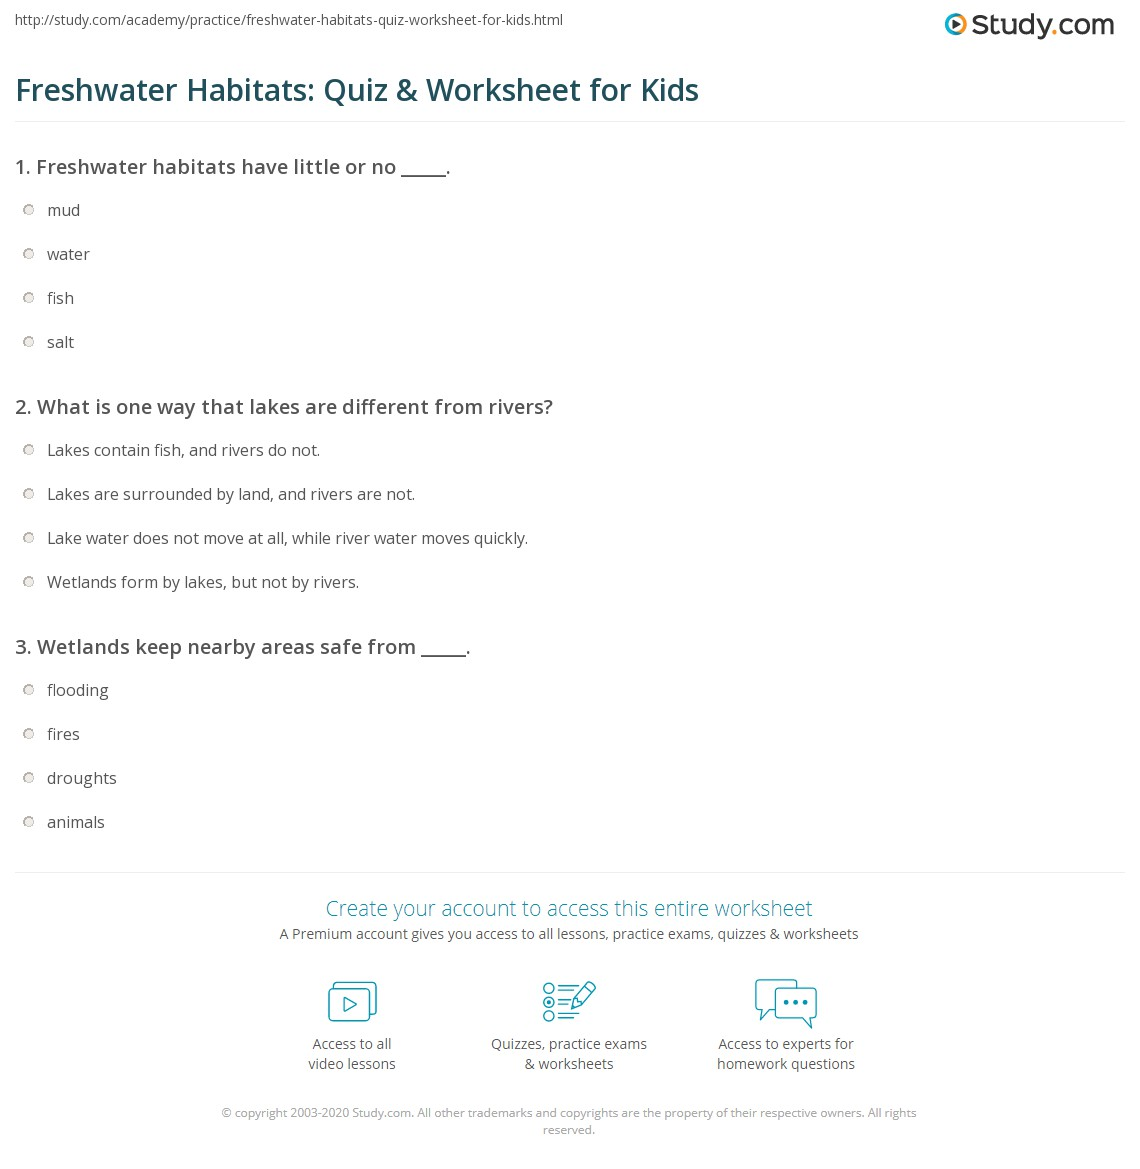 Freshwater Habitats Quiz Amp Worksheet For Kids